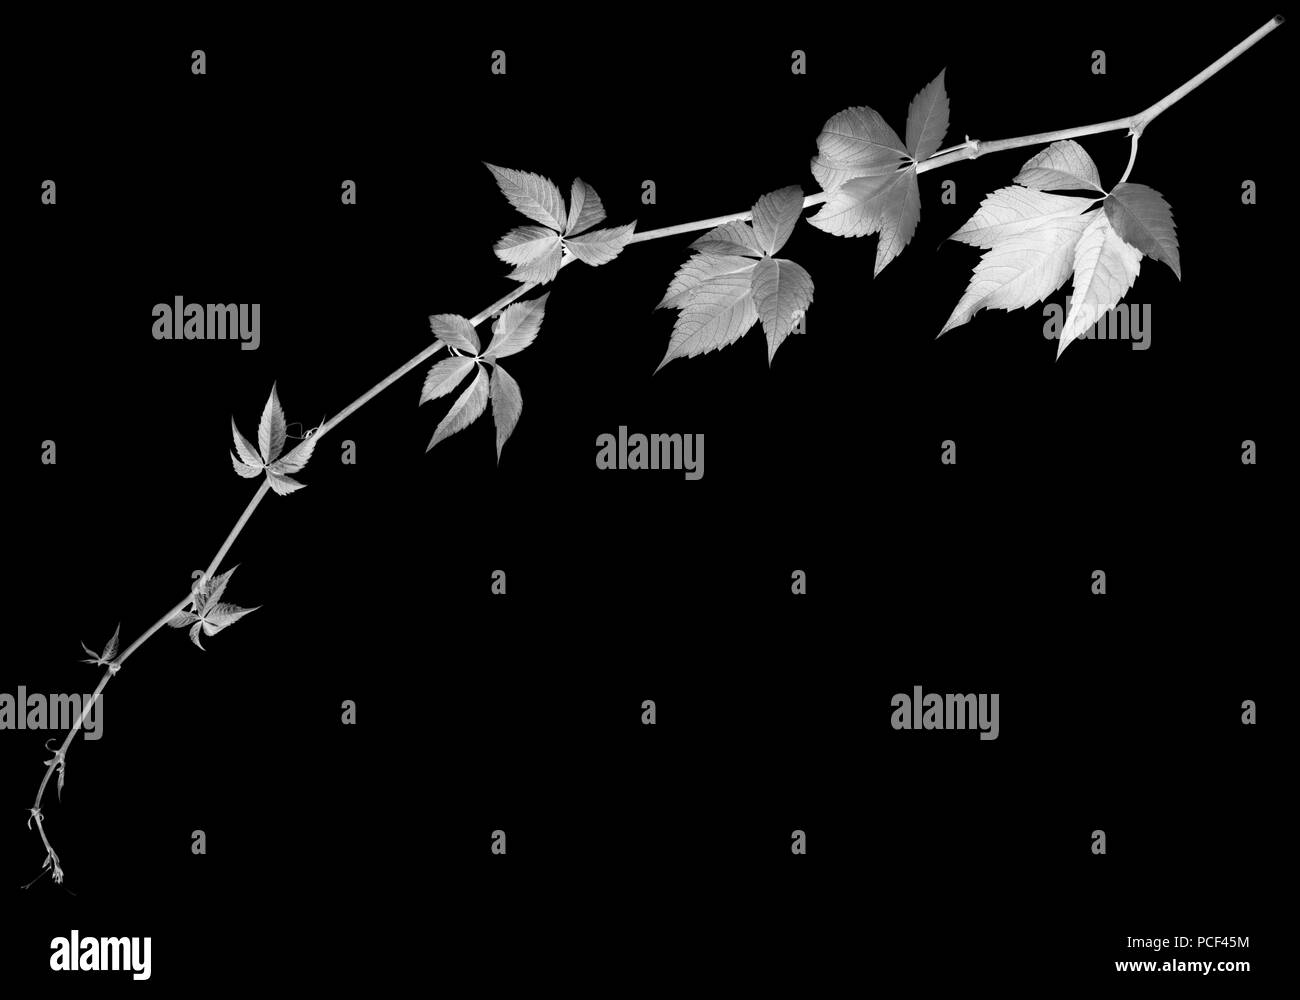 Black and white twig of grapes leaves, parthenocissus quinquefolia foliage. Isolated on black background with copy space. Negative picture. - Stock Image